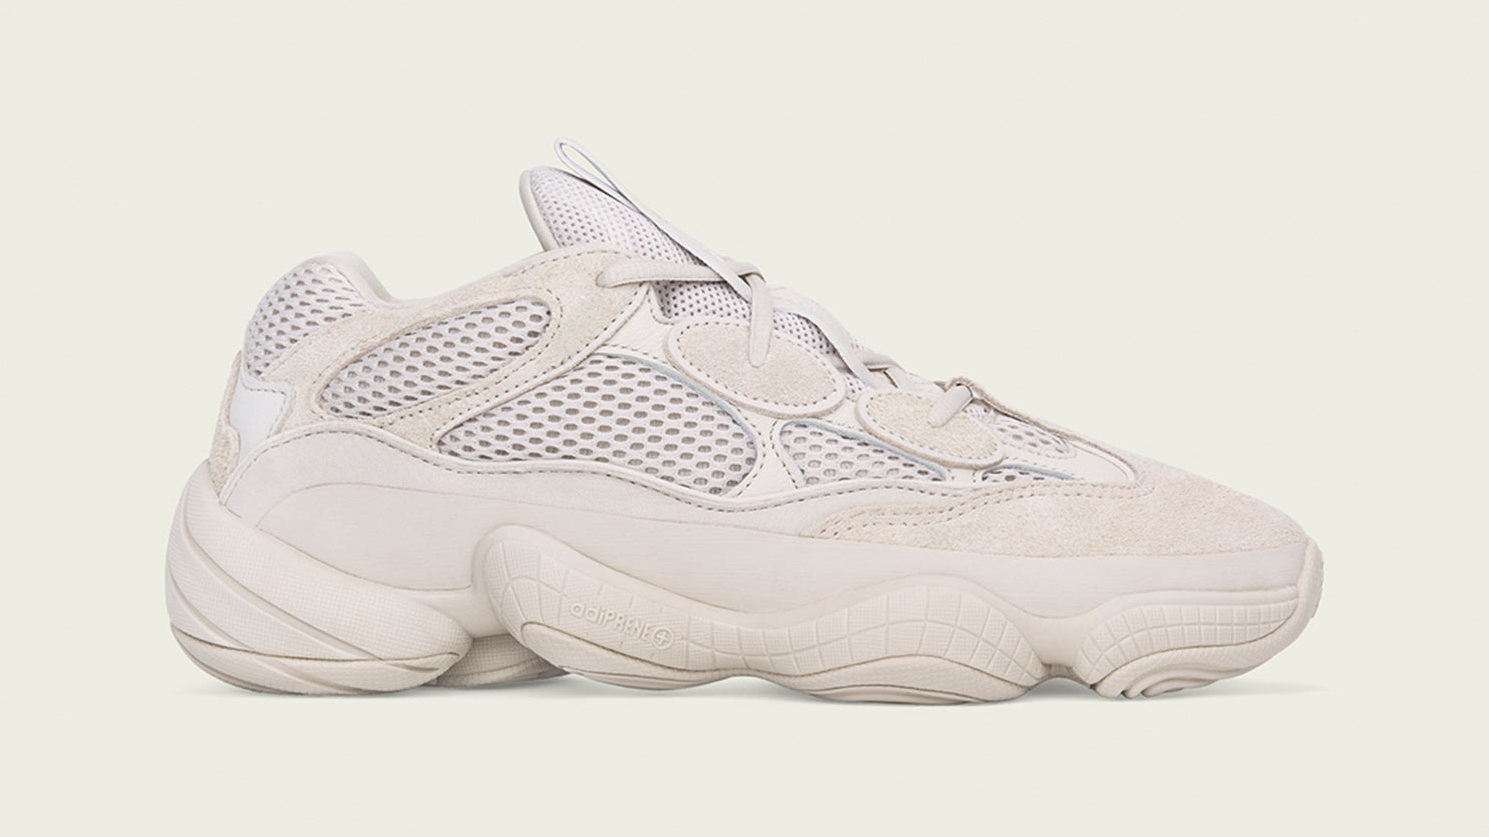 finest selection 185f1 cf519 Where to Buy Blush Adidas Yeezy 500 | Sole Collector